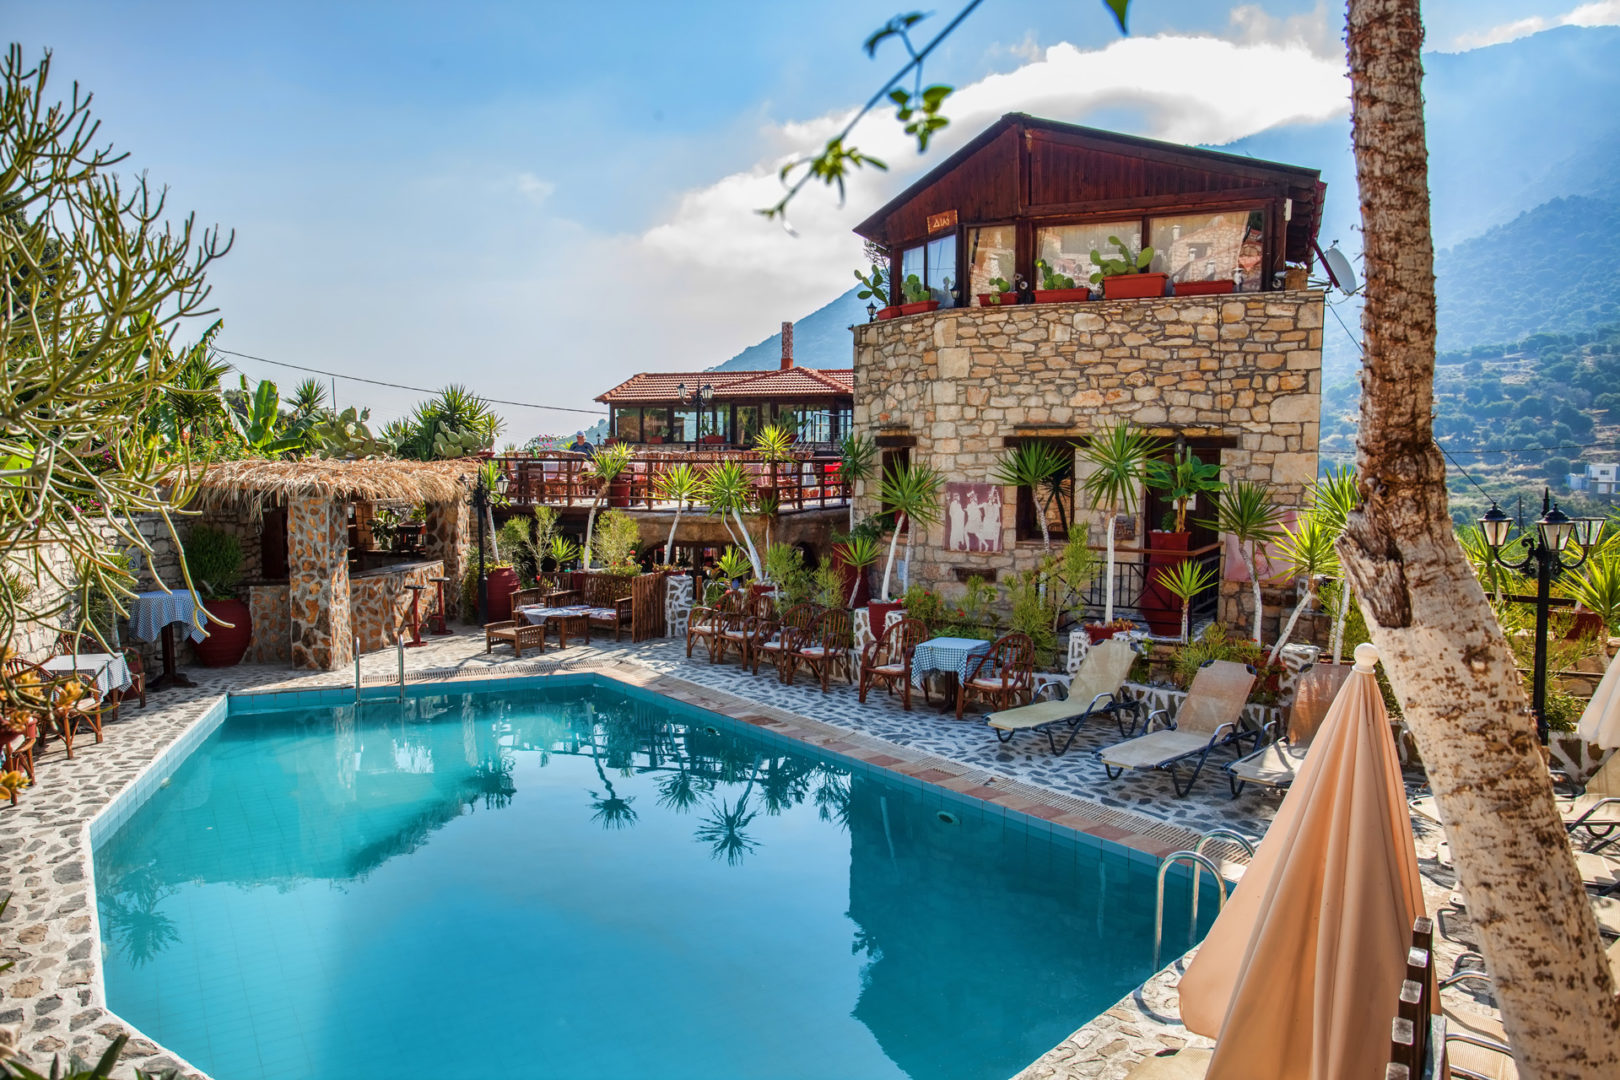 Hotel in Bali Crete - Stone Village - Large Pool 3